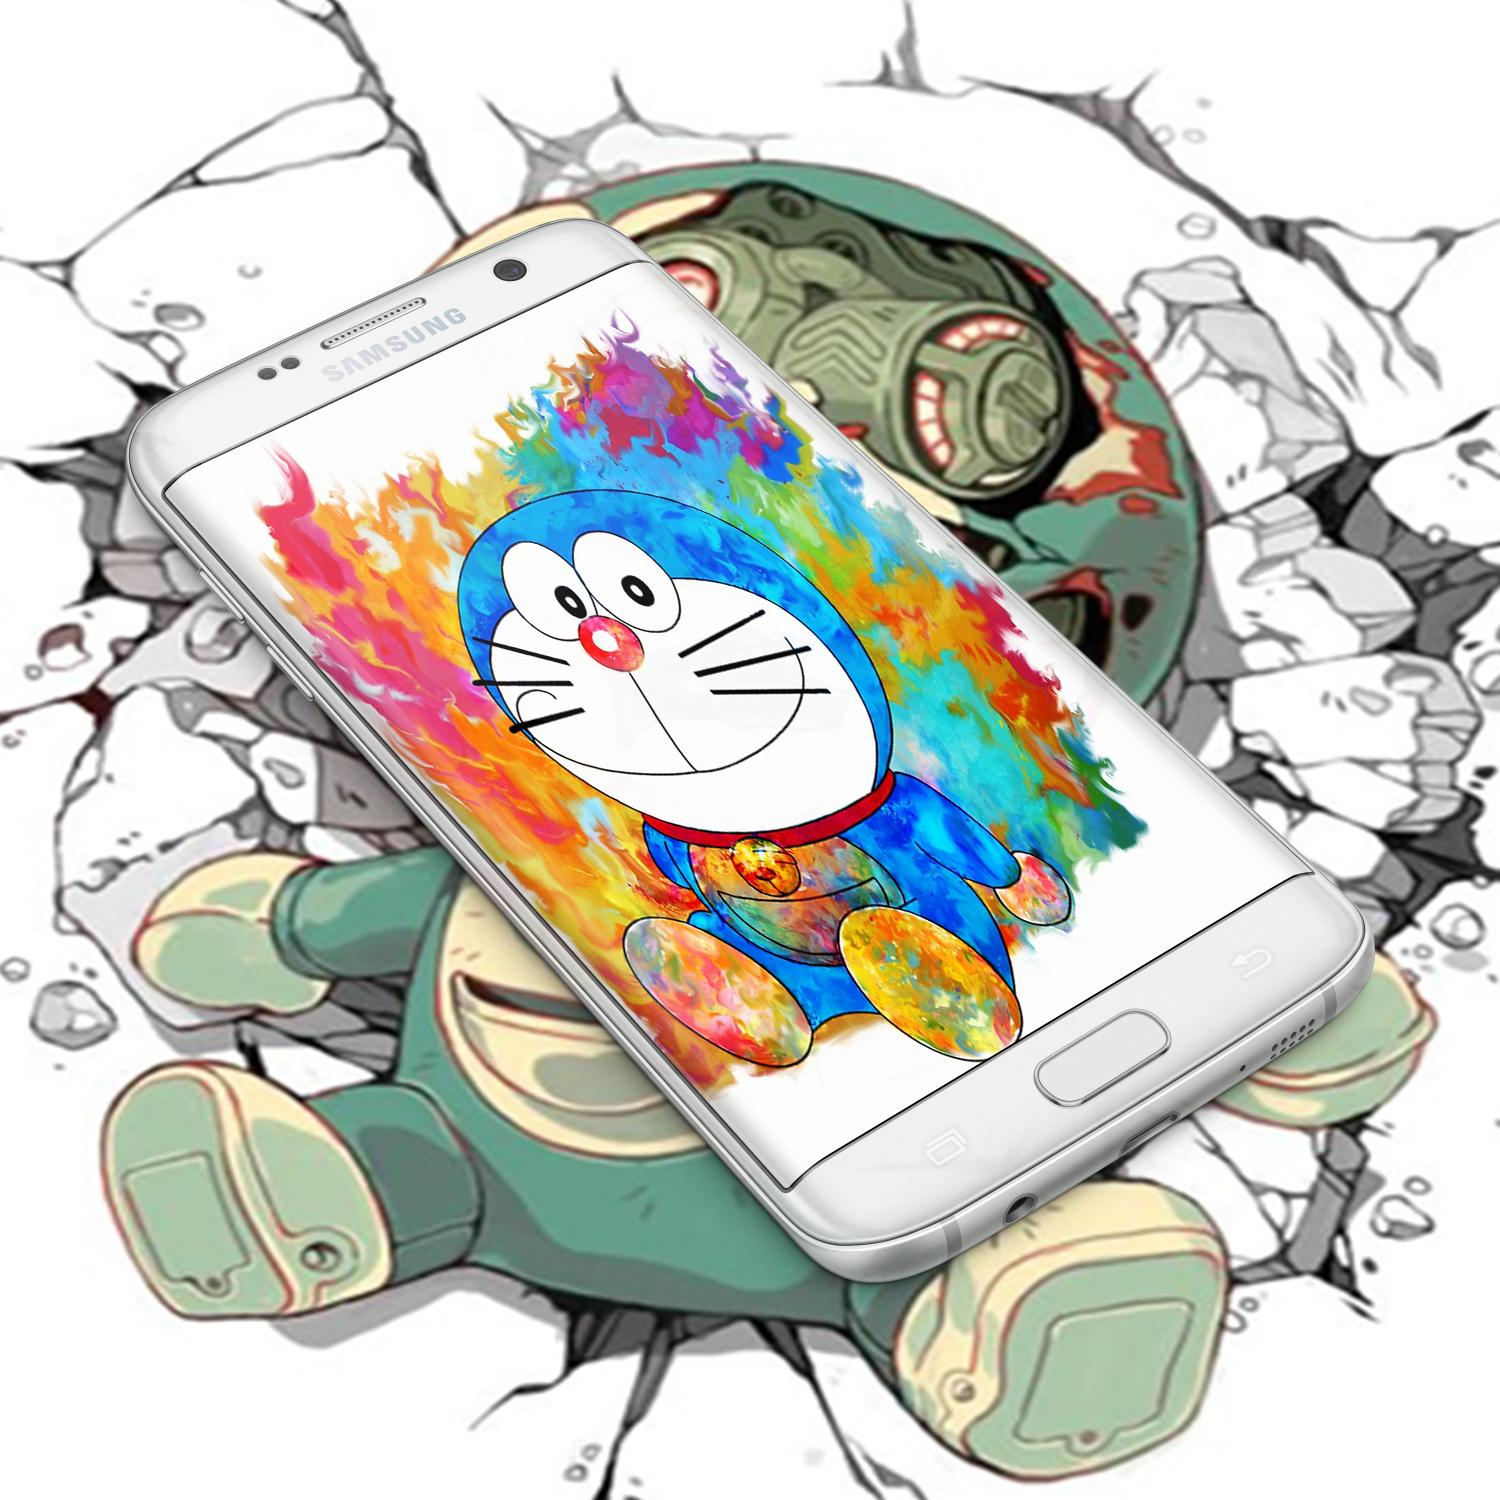 Doraemon Live Wallpaper 4K For Android APK Download